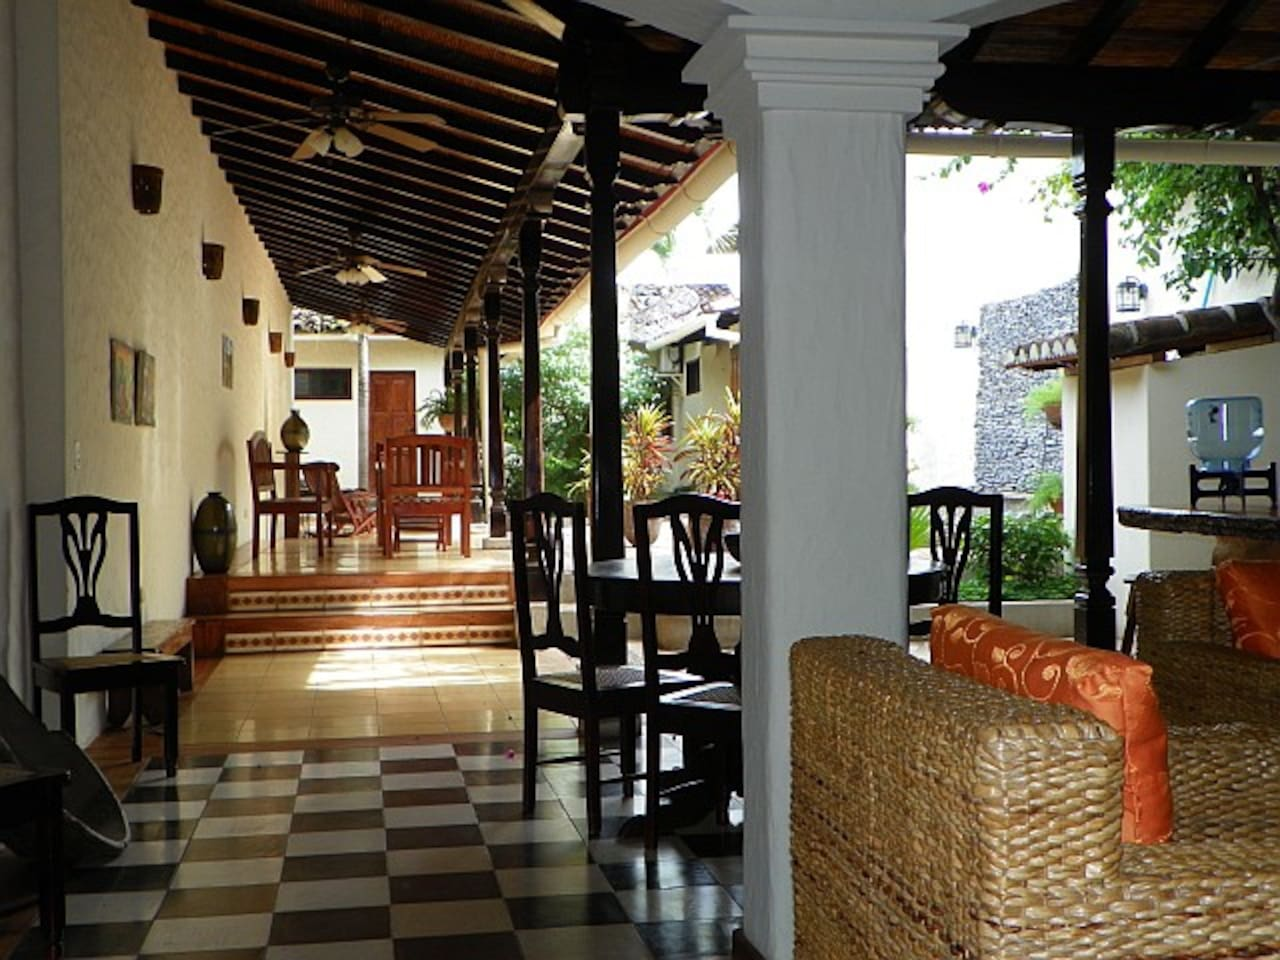 The interior of the house with great living space, indoor gardens and a comfortable patio and pool area to relax with friends or family.